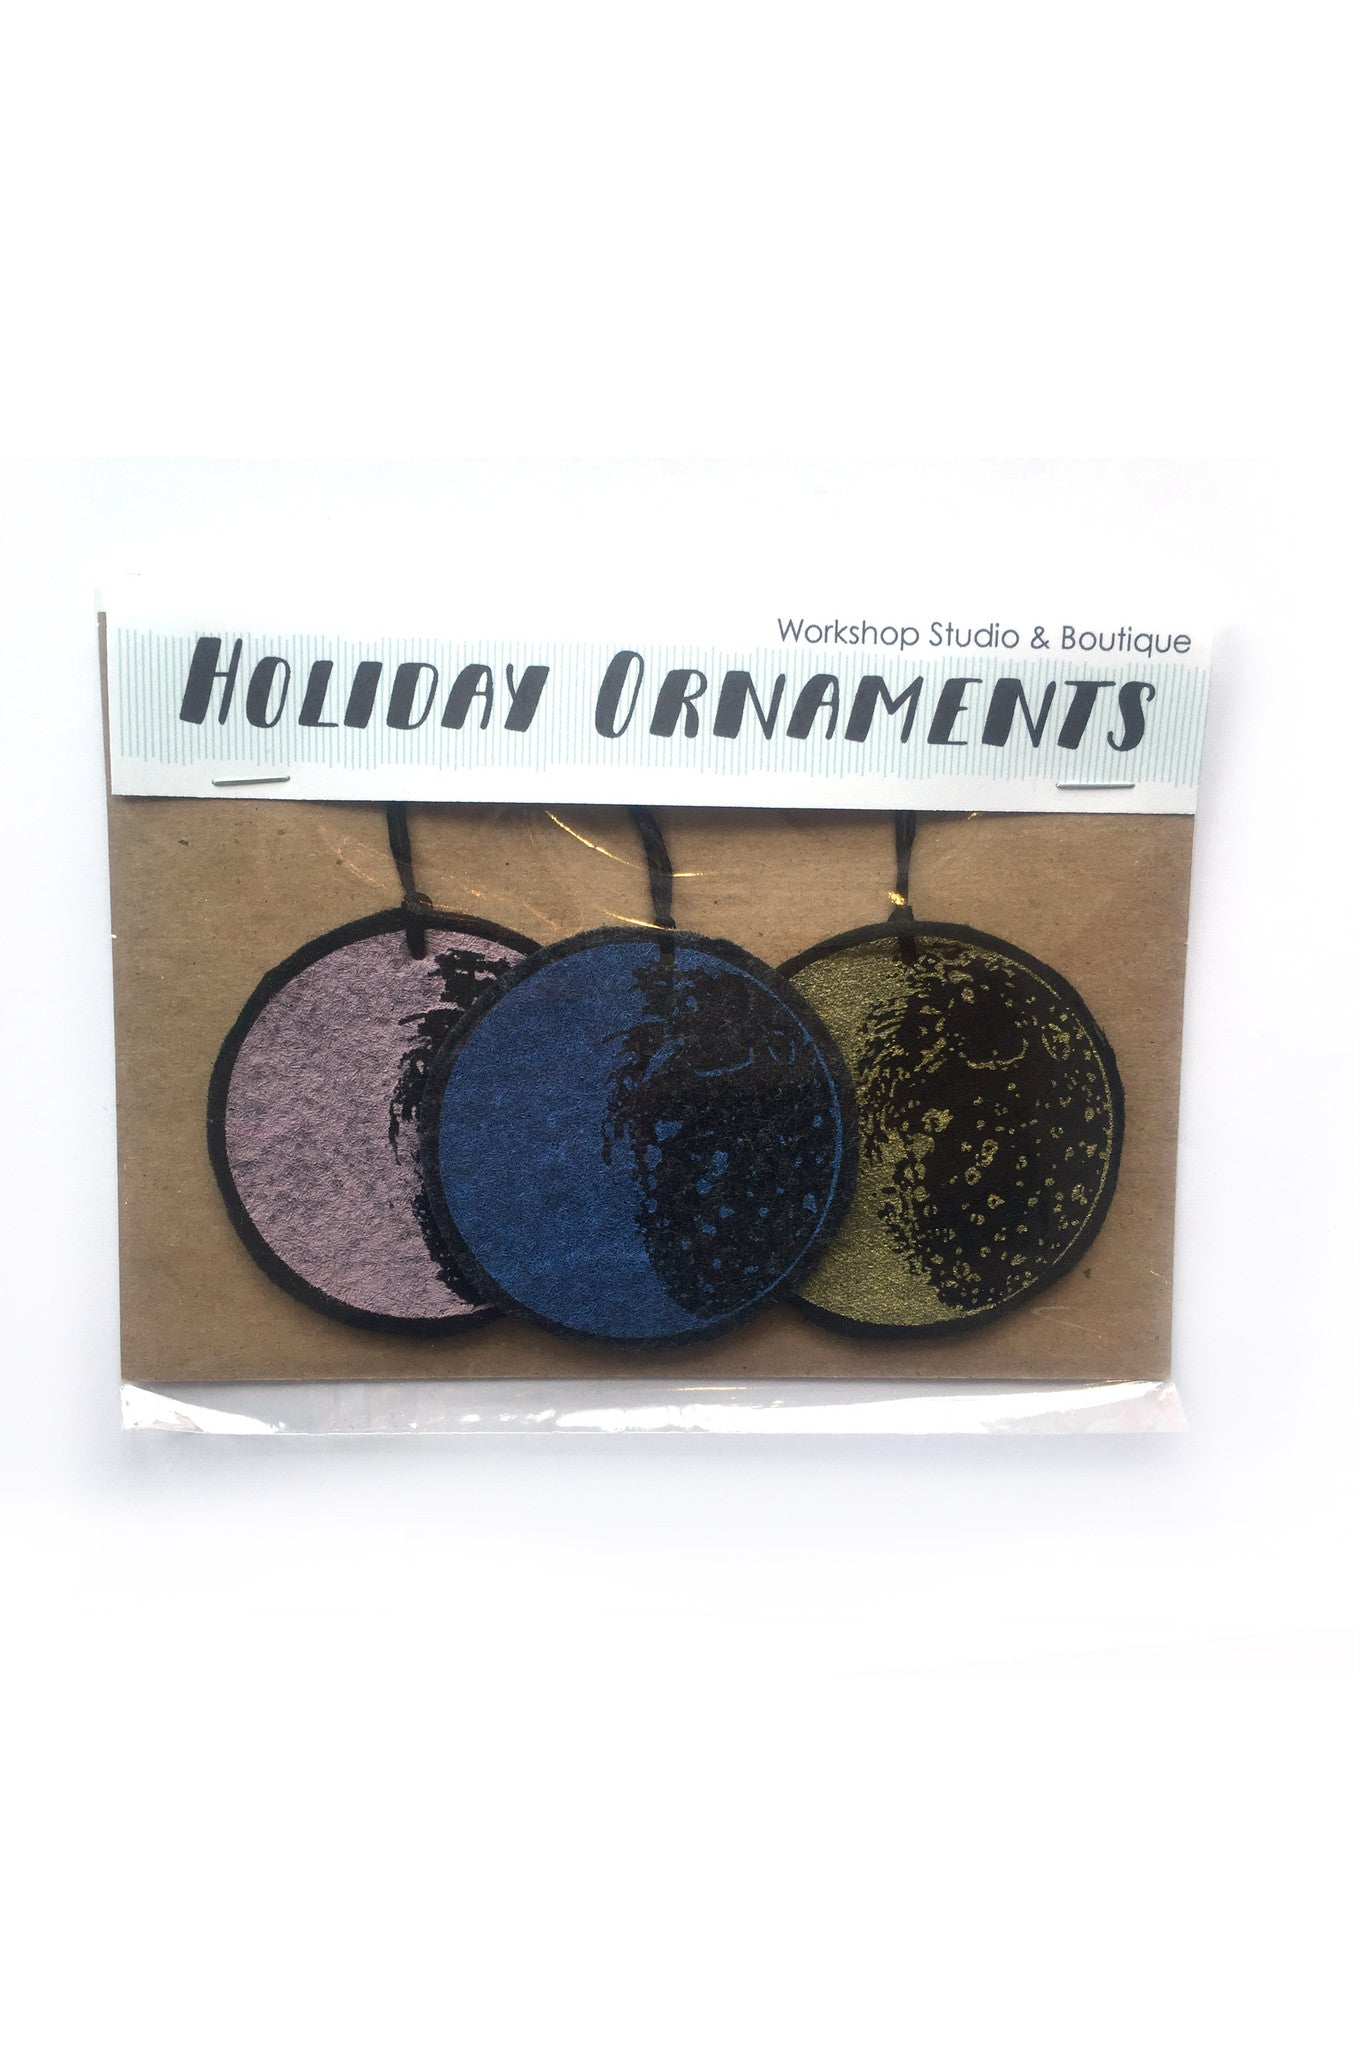 Workshop handmade silkscreen ornament sets, 3 different coloured moons. made in Ottawa Canada